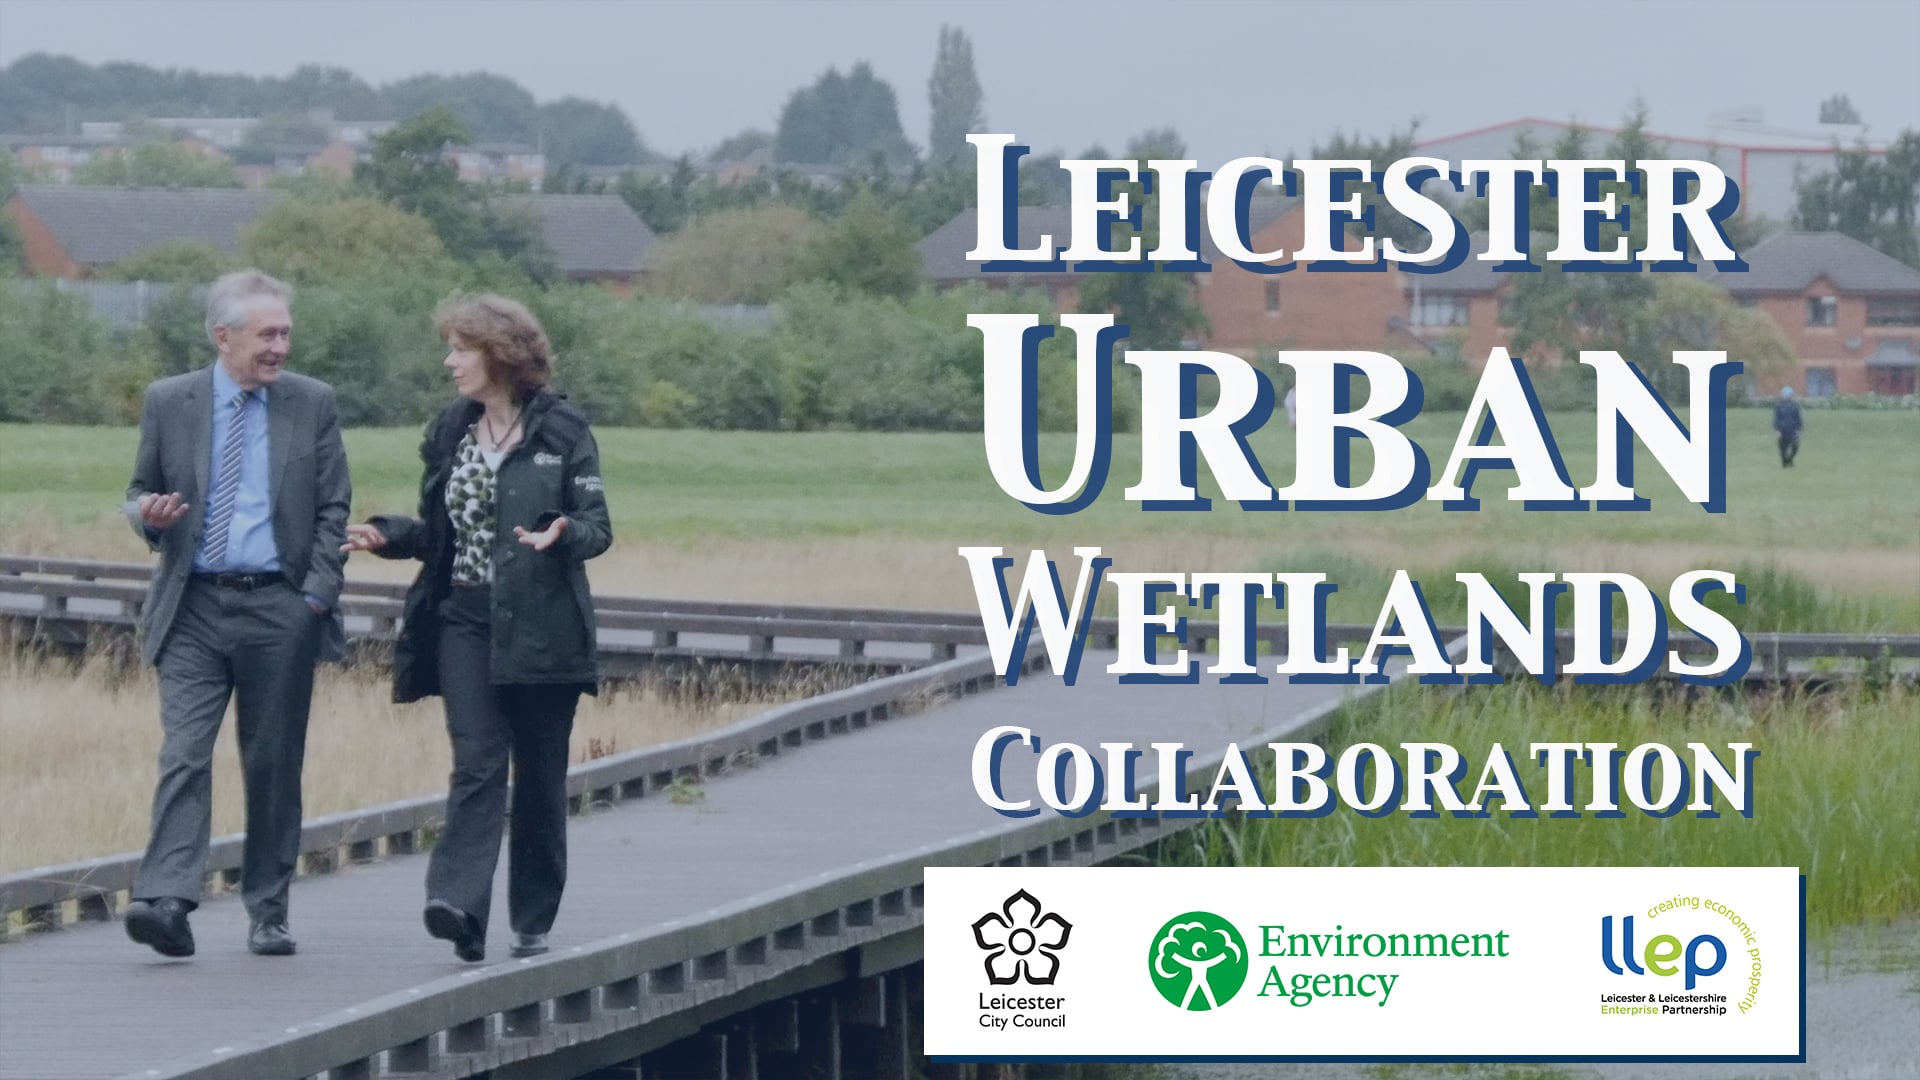 The Leicester Urban Wetlands Collaboration